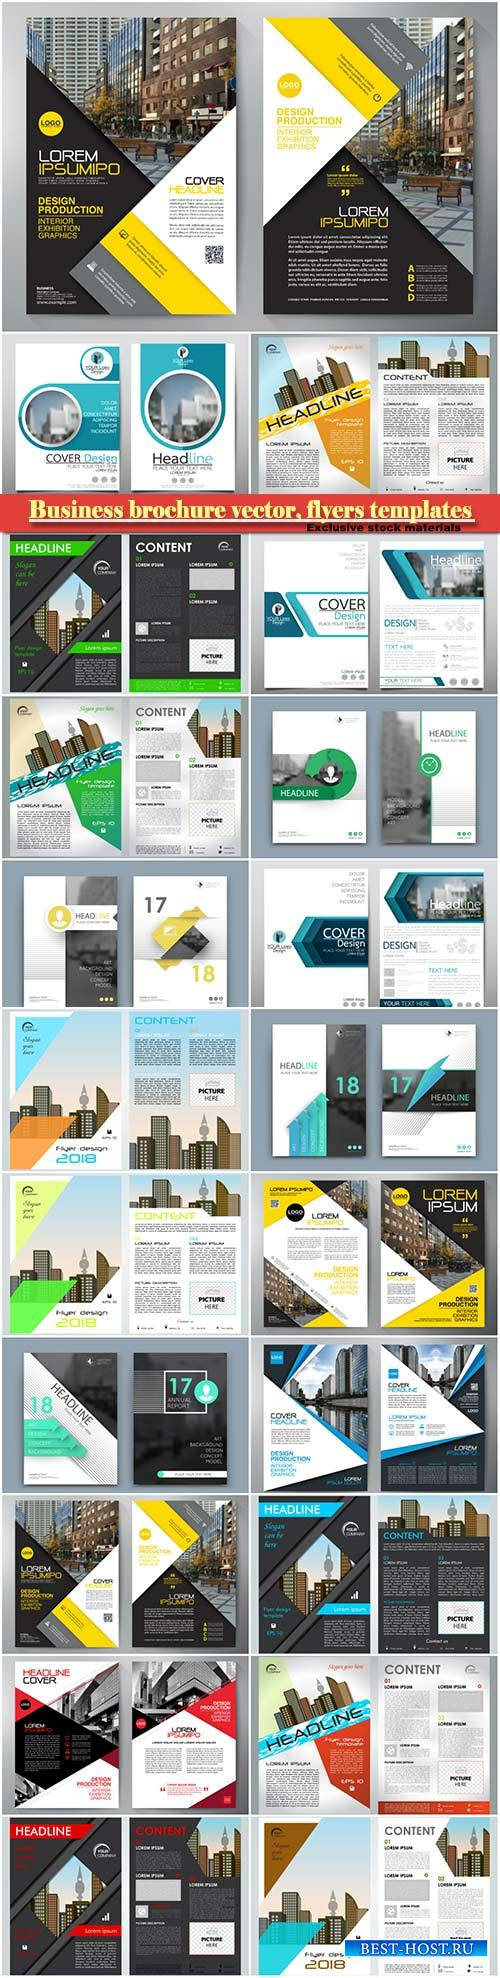 Business brochure vector, flyers templates # 33